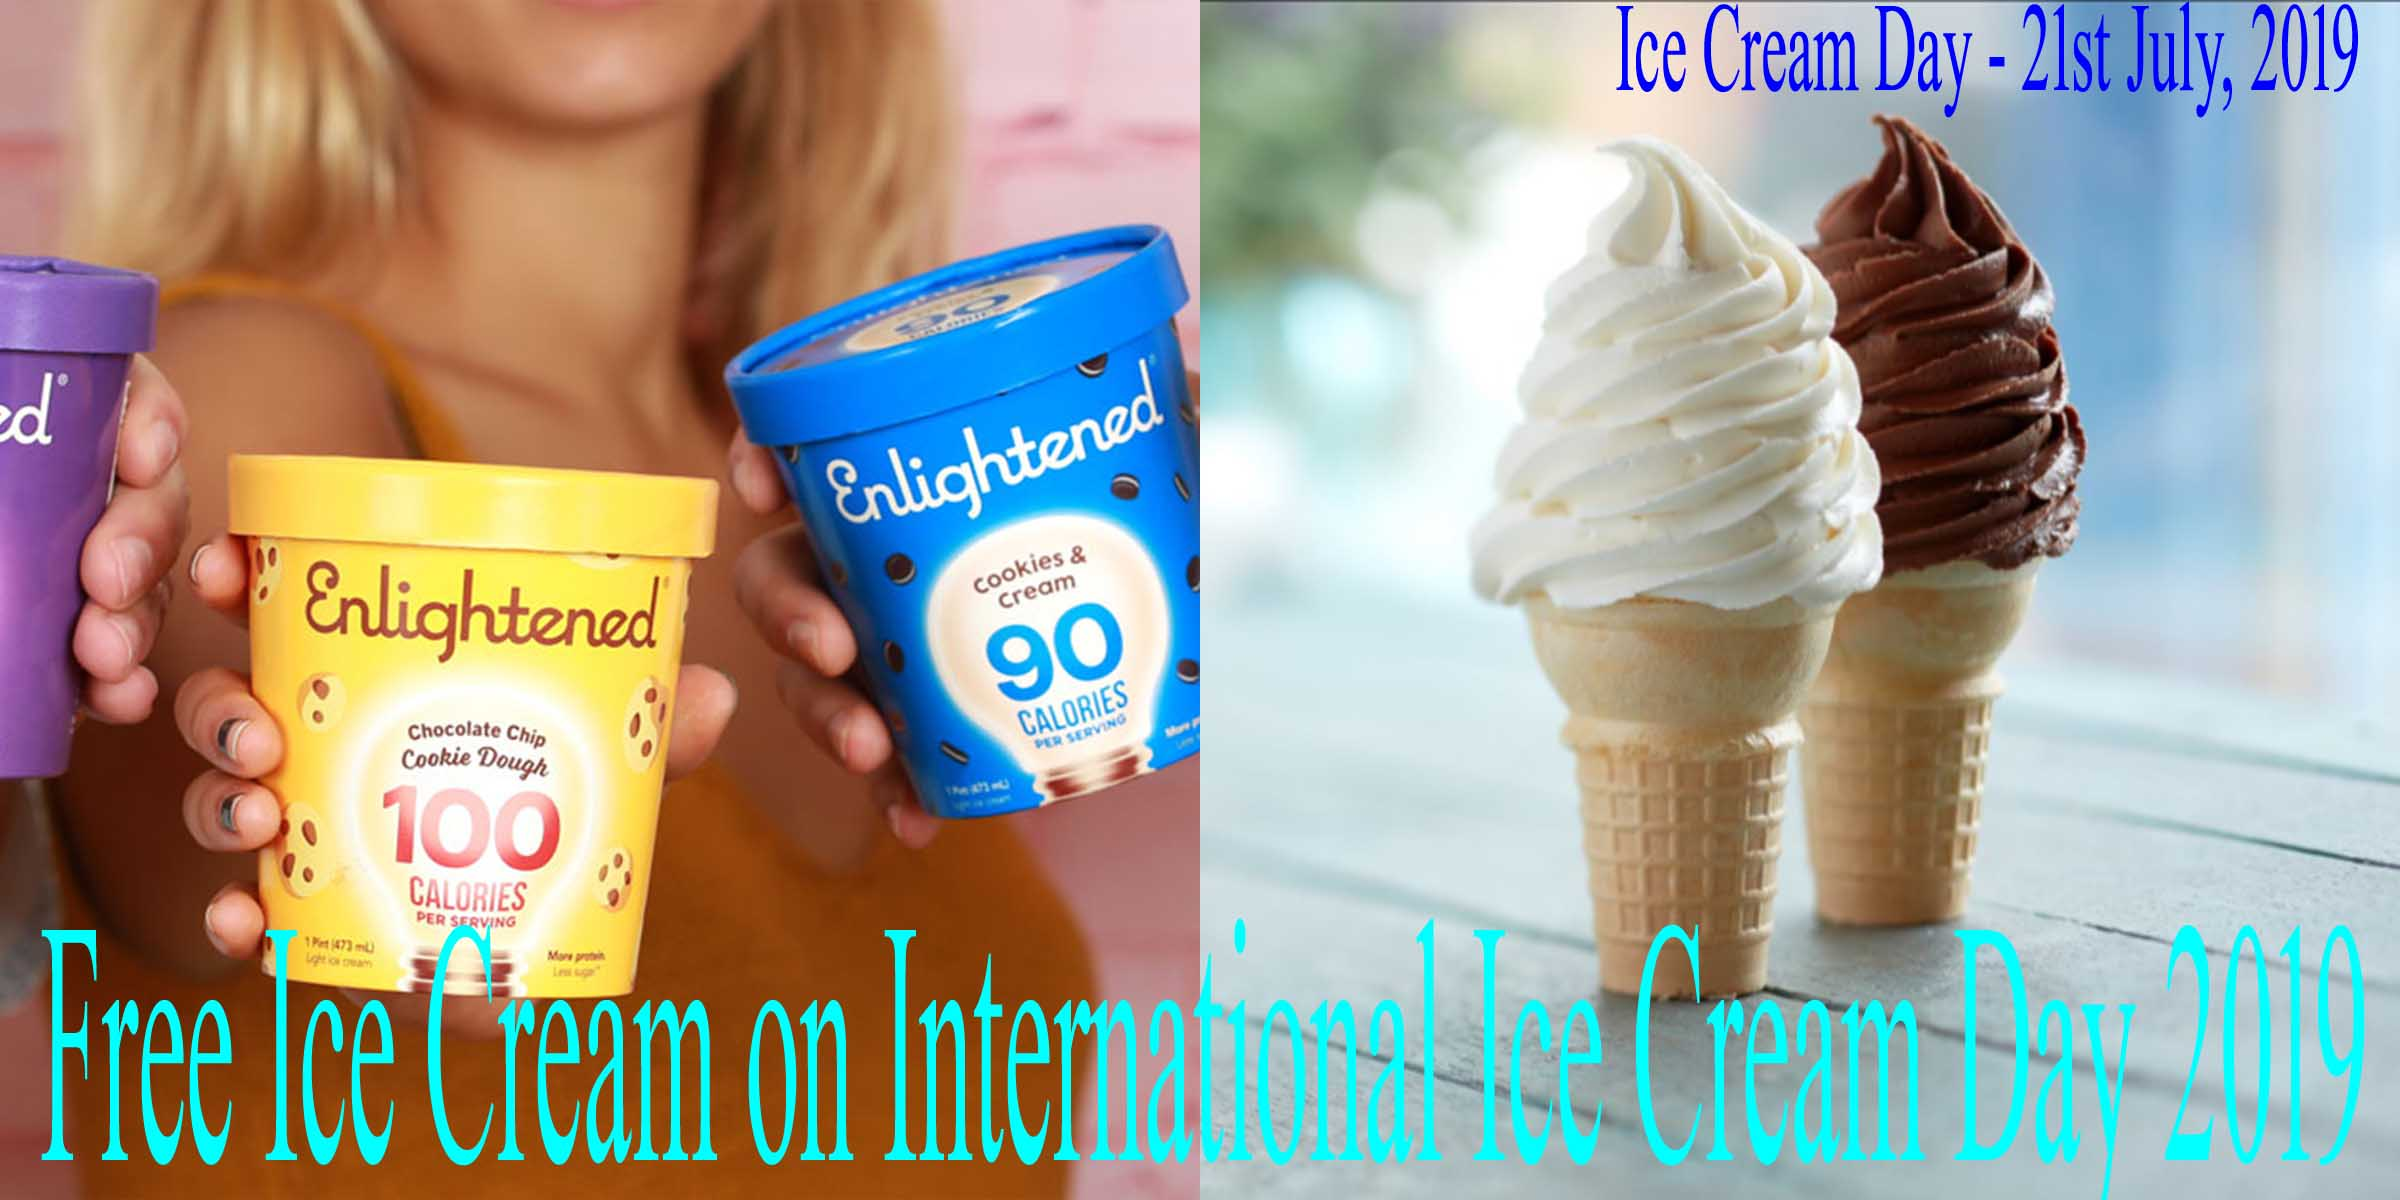 Free Ice Cream on International Ice Cream Day 2019